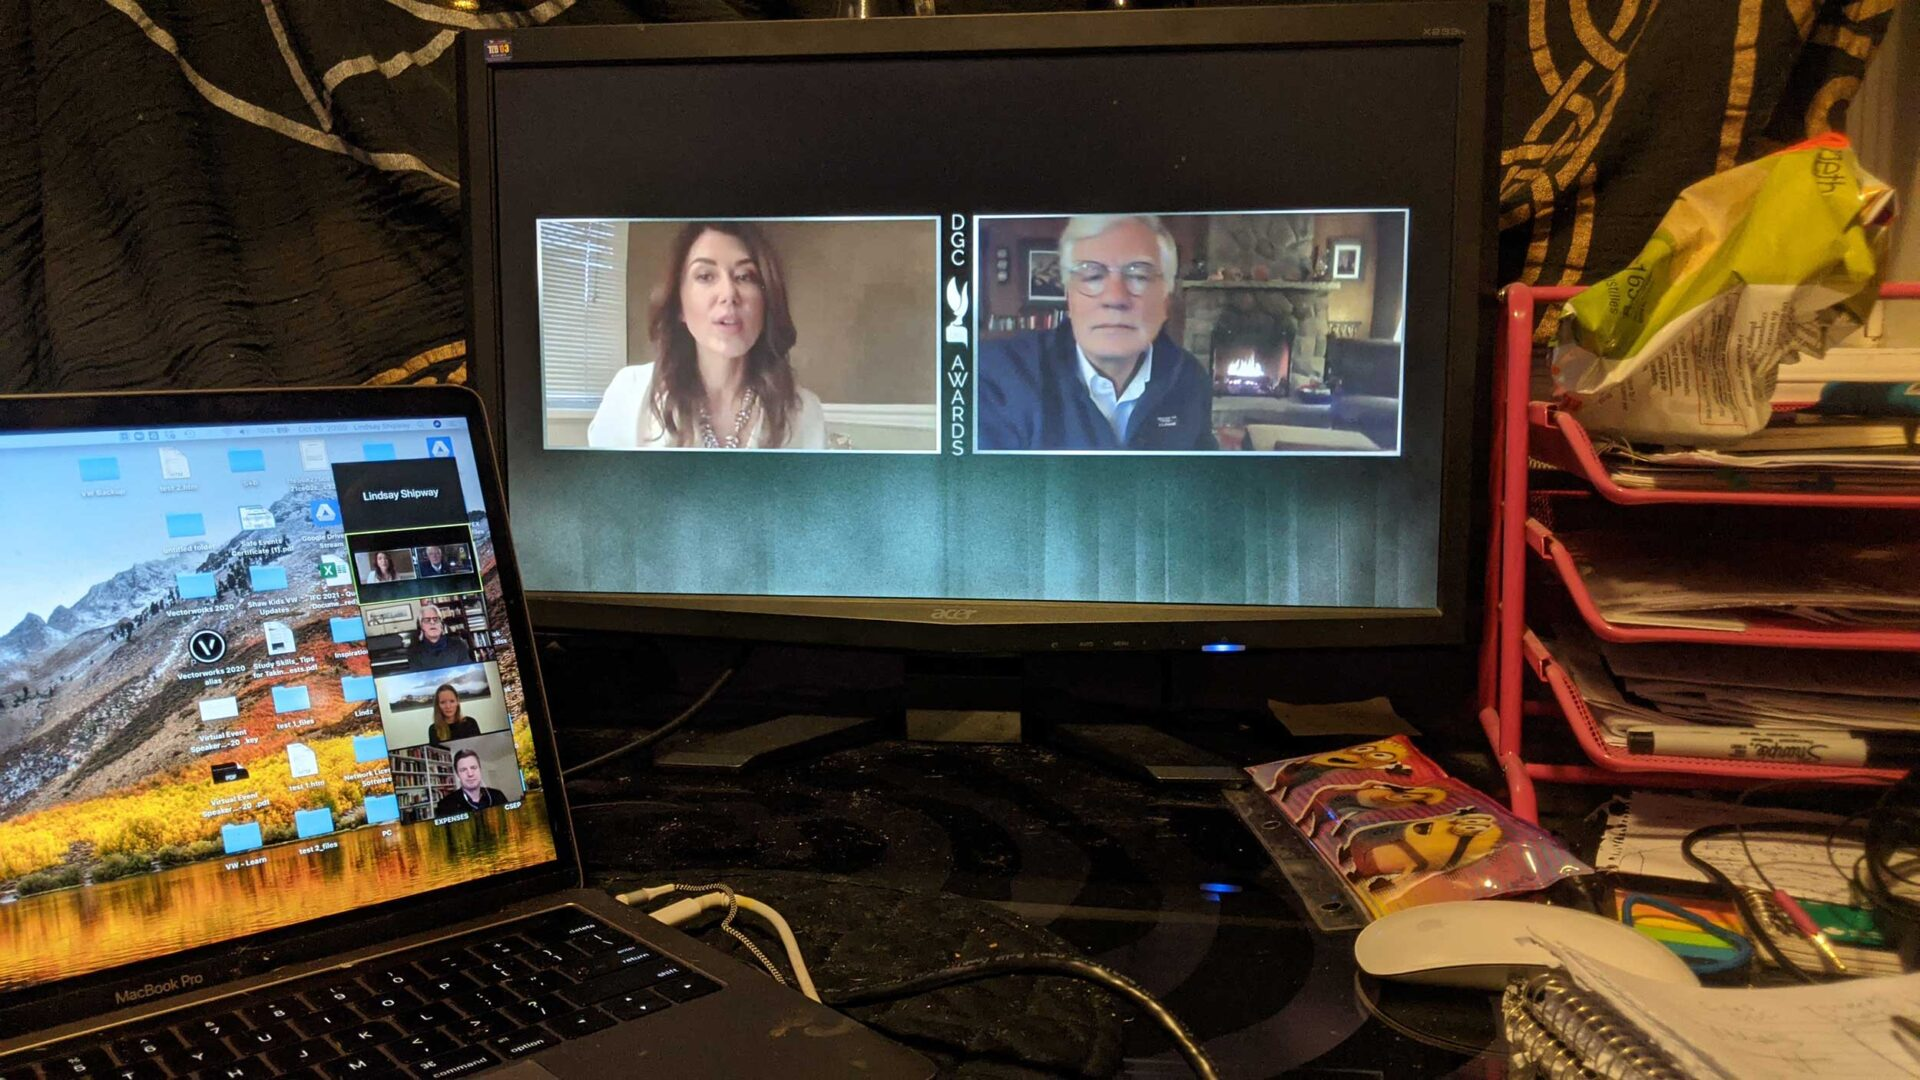 Virtual broadcast with two headshots